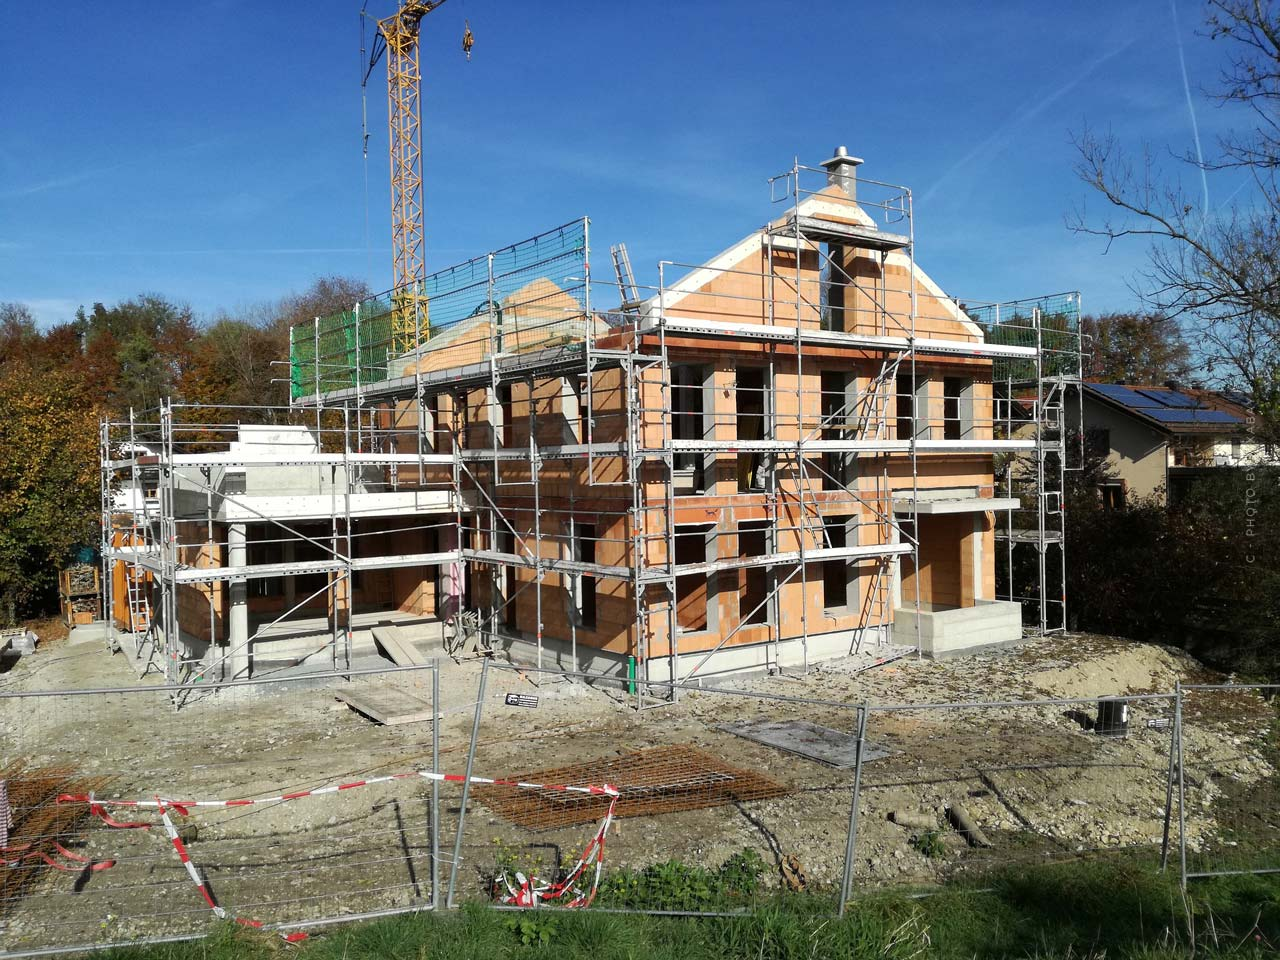 New Building Projects: Private, Procedure, Costs for Building Projects & Developers